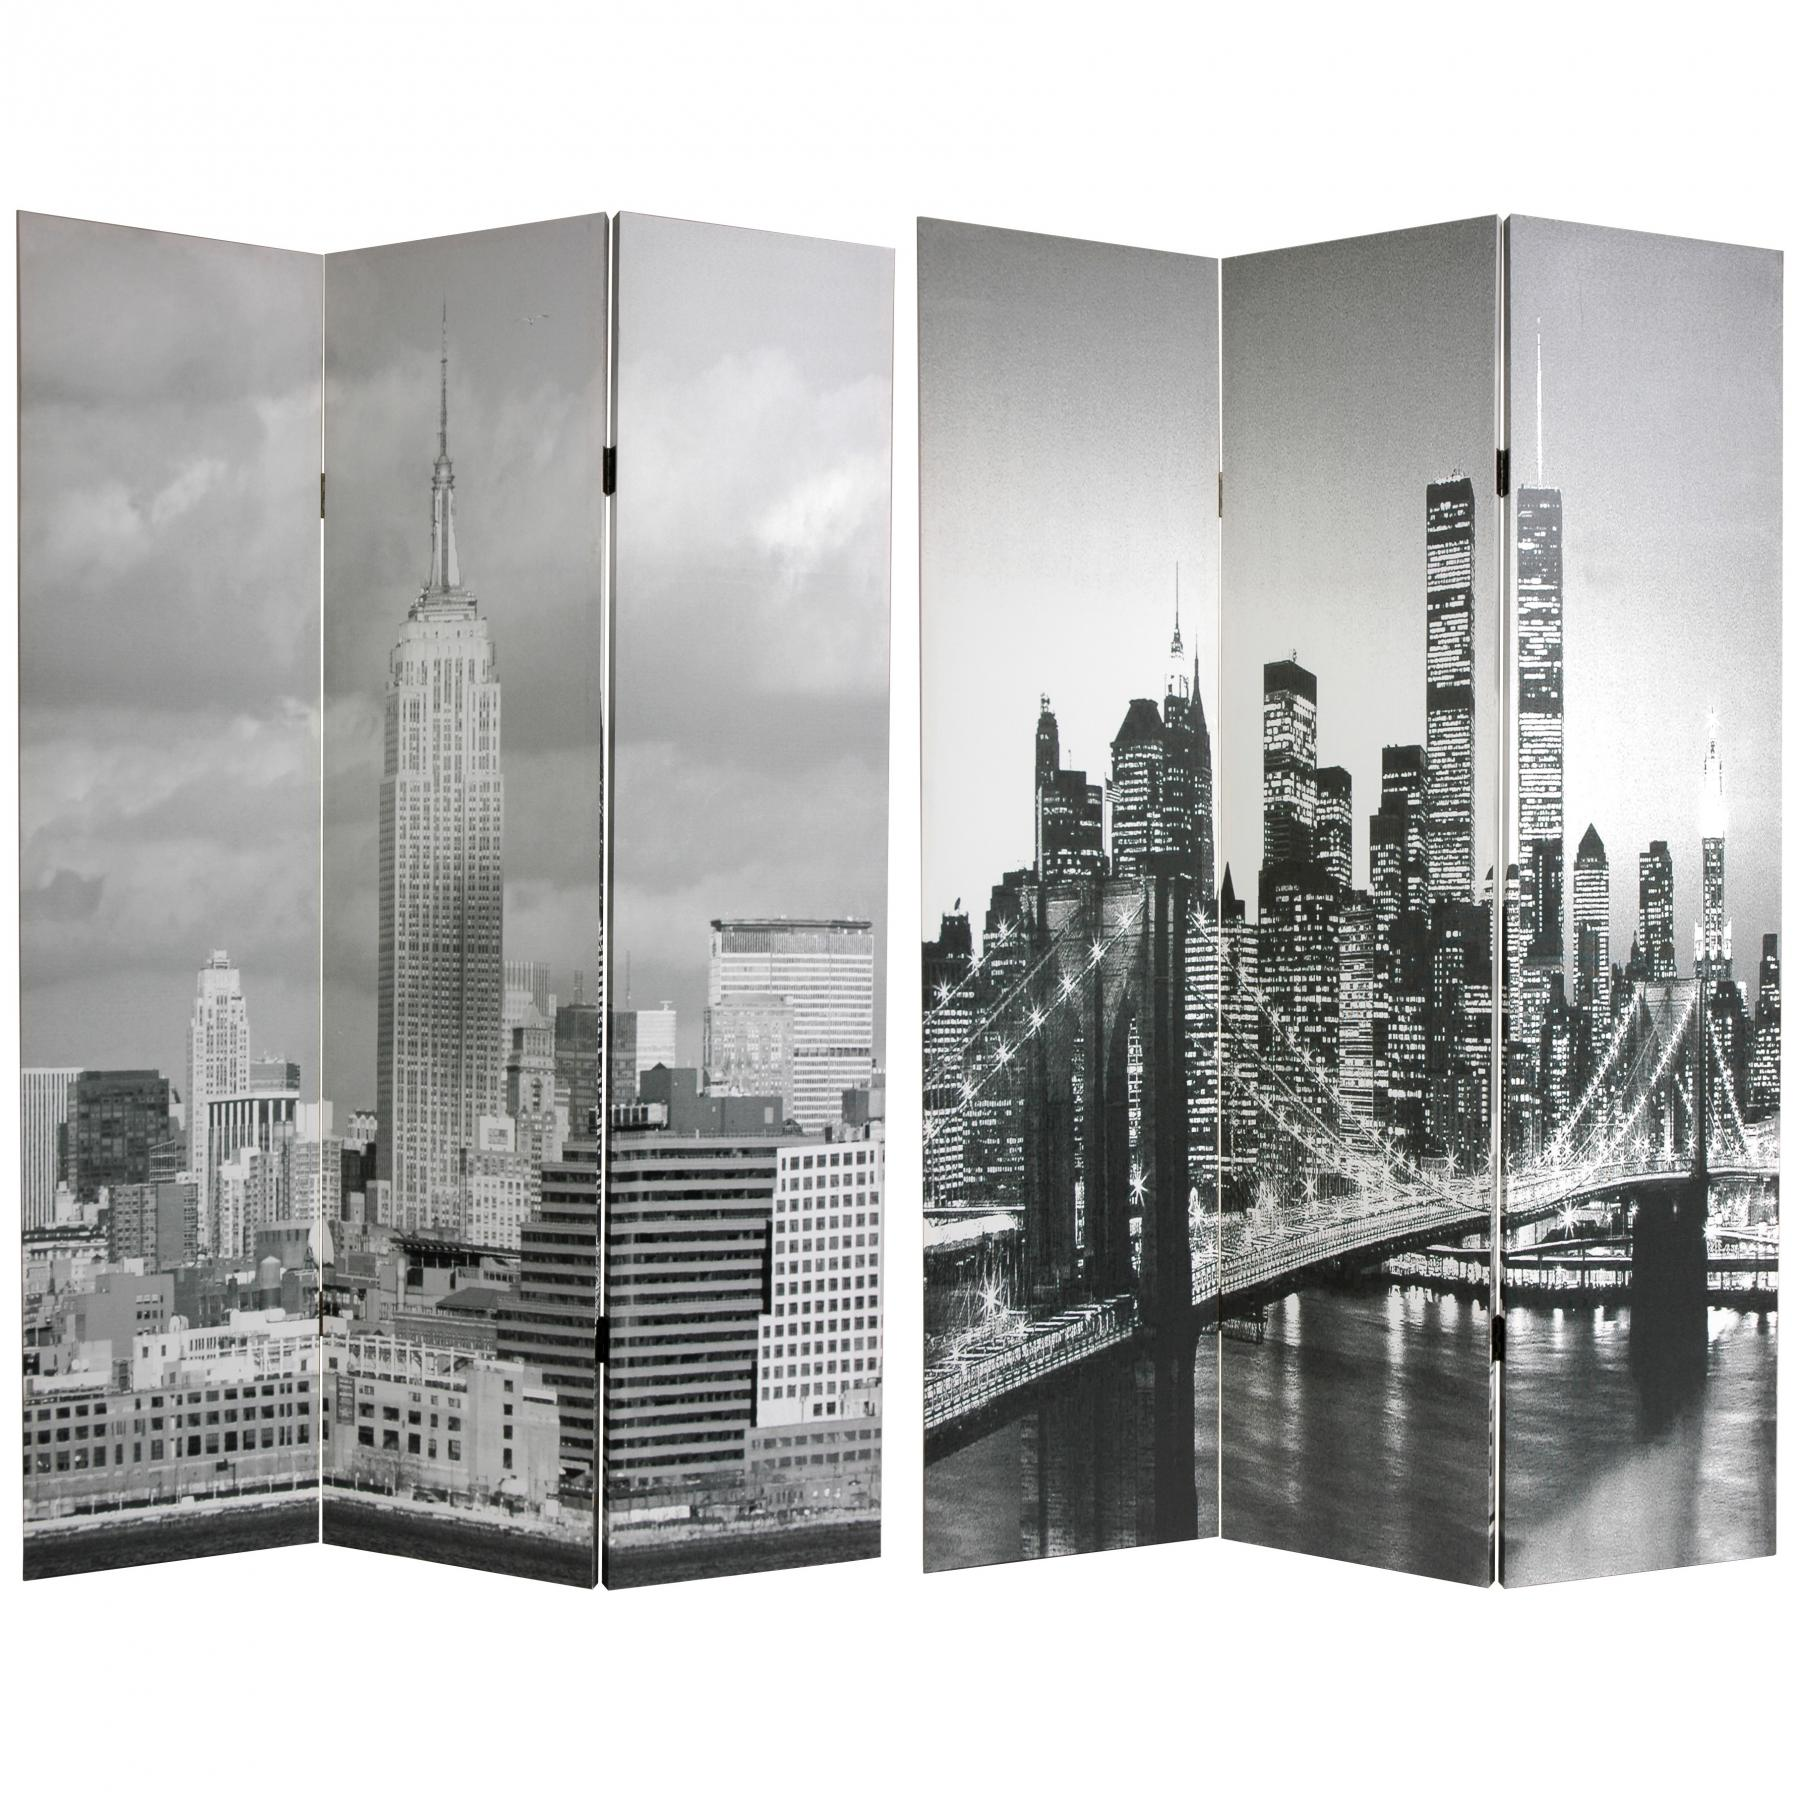 6 ft Tall New York Scenes Room Divider RoomDividerscom